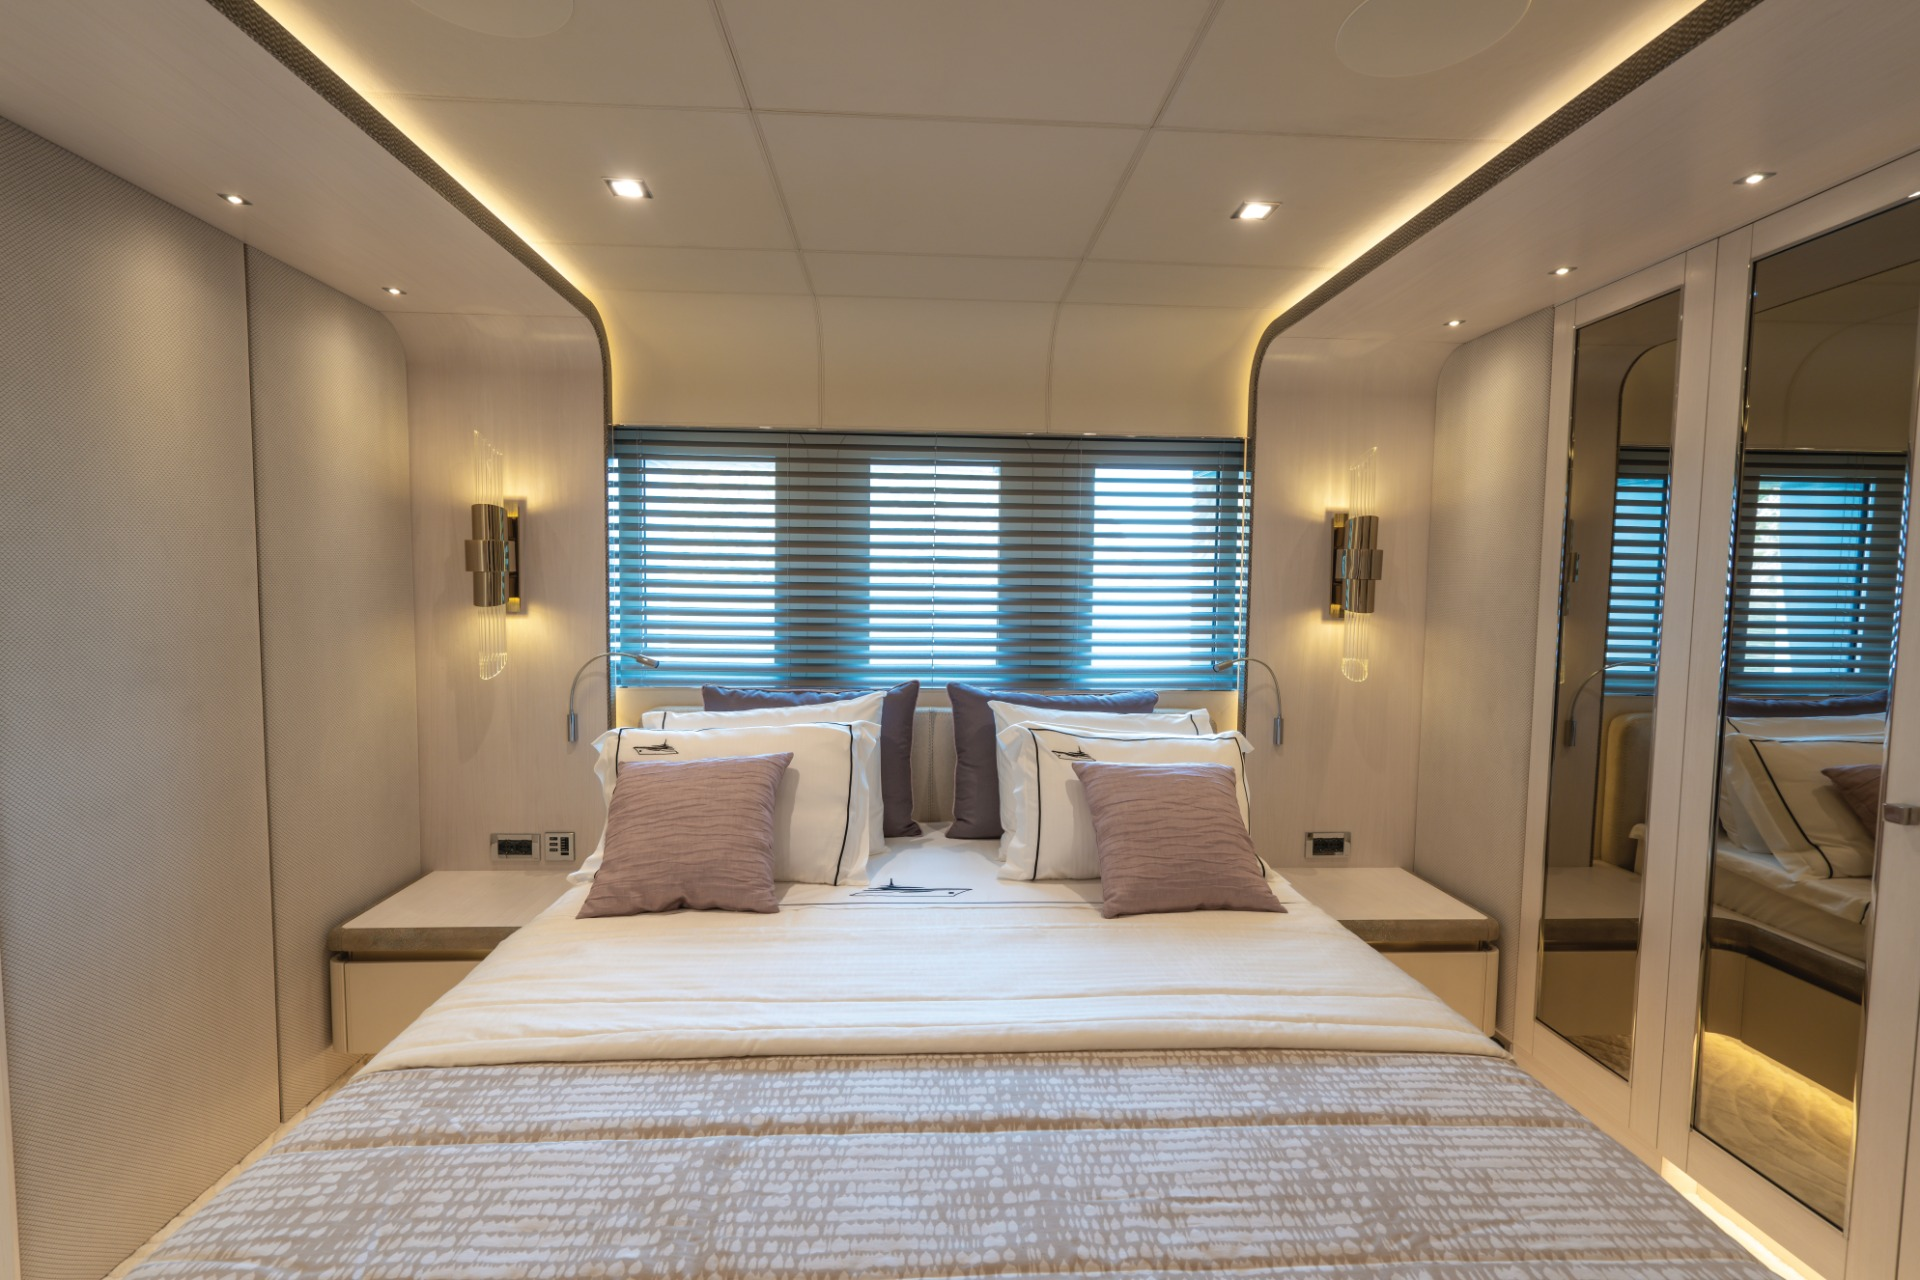 Monaco Yacht Show Highlights! A Grand and Luxurious Yacht Design monaco yacht show Monaco Yacht Show Highlights! A Grand and Luxurious Yacht Design WhatsApp Image 2019 09 26 at 09